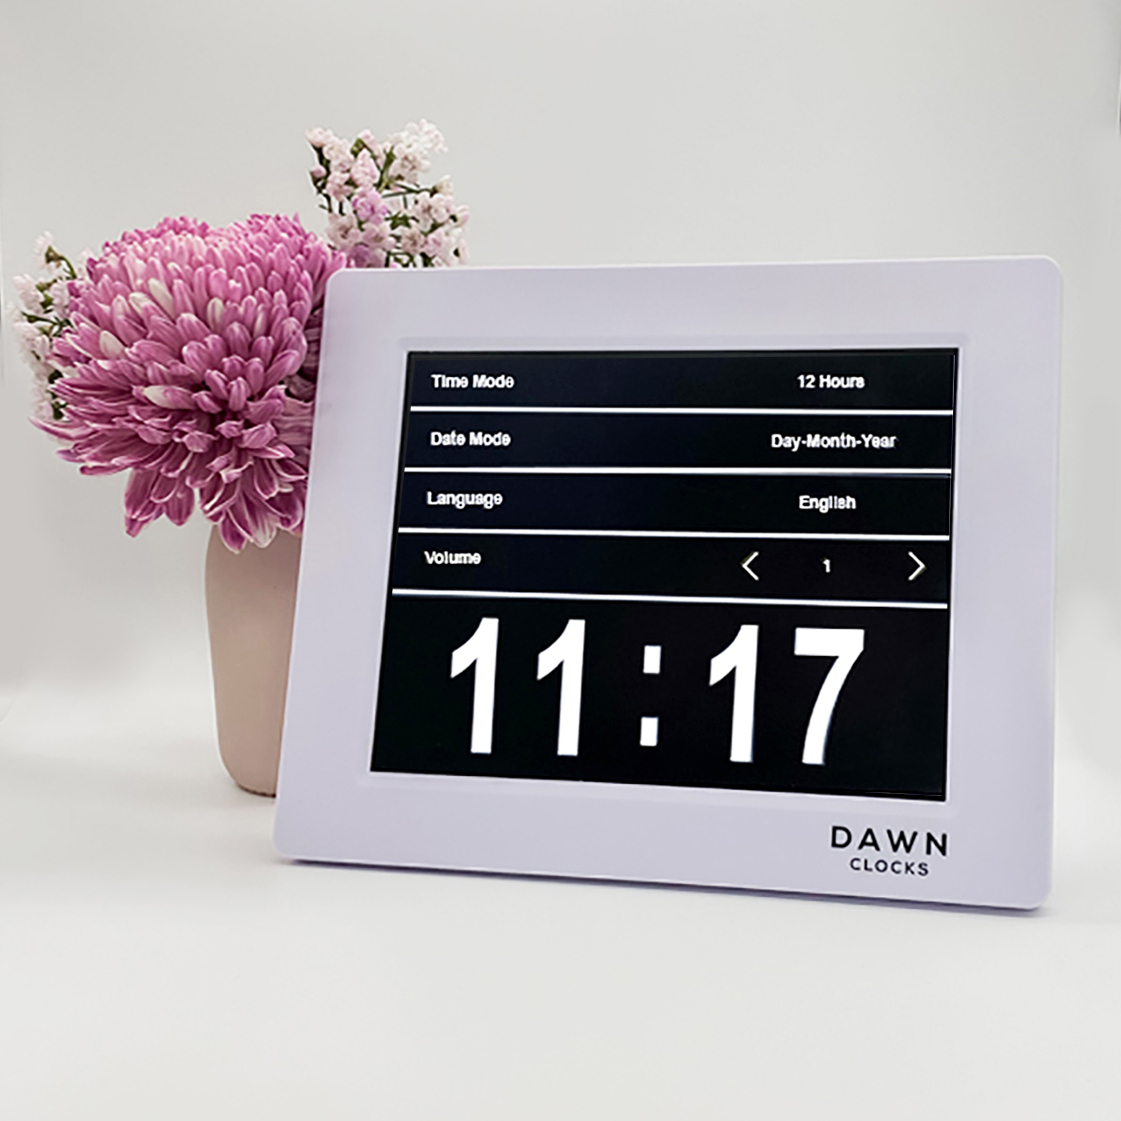 Original Dawn Clock shown on a table with a menu example on the screen. This is ideal for all ages and proved essential for NDIS participants, people living with Dementia, people living with a disability and seniors.